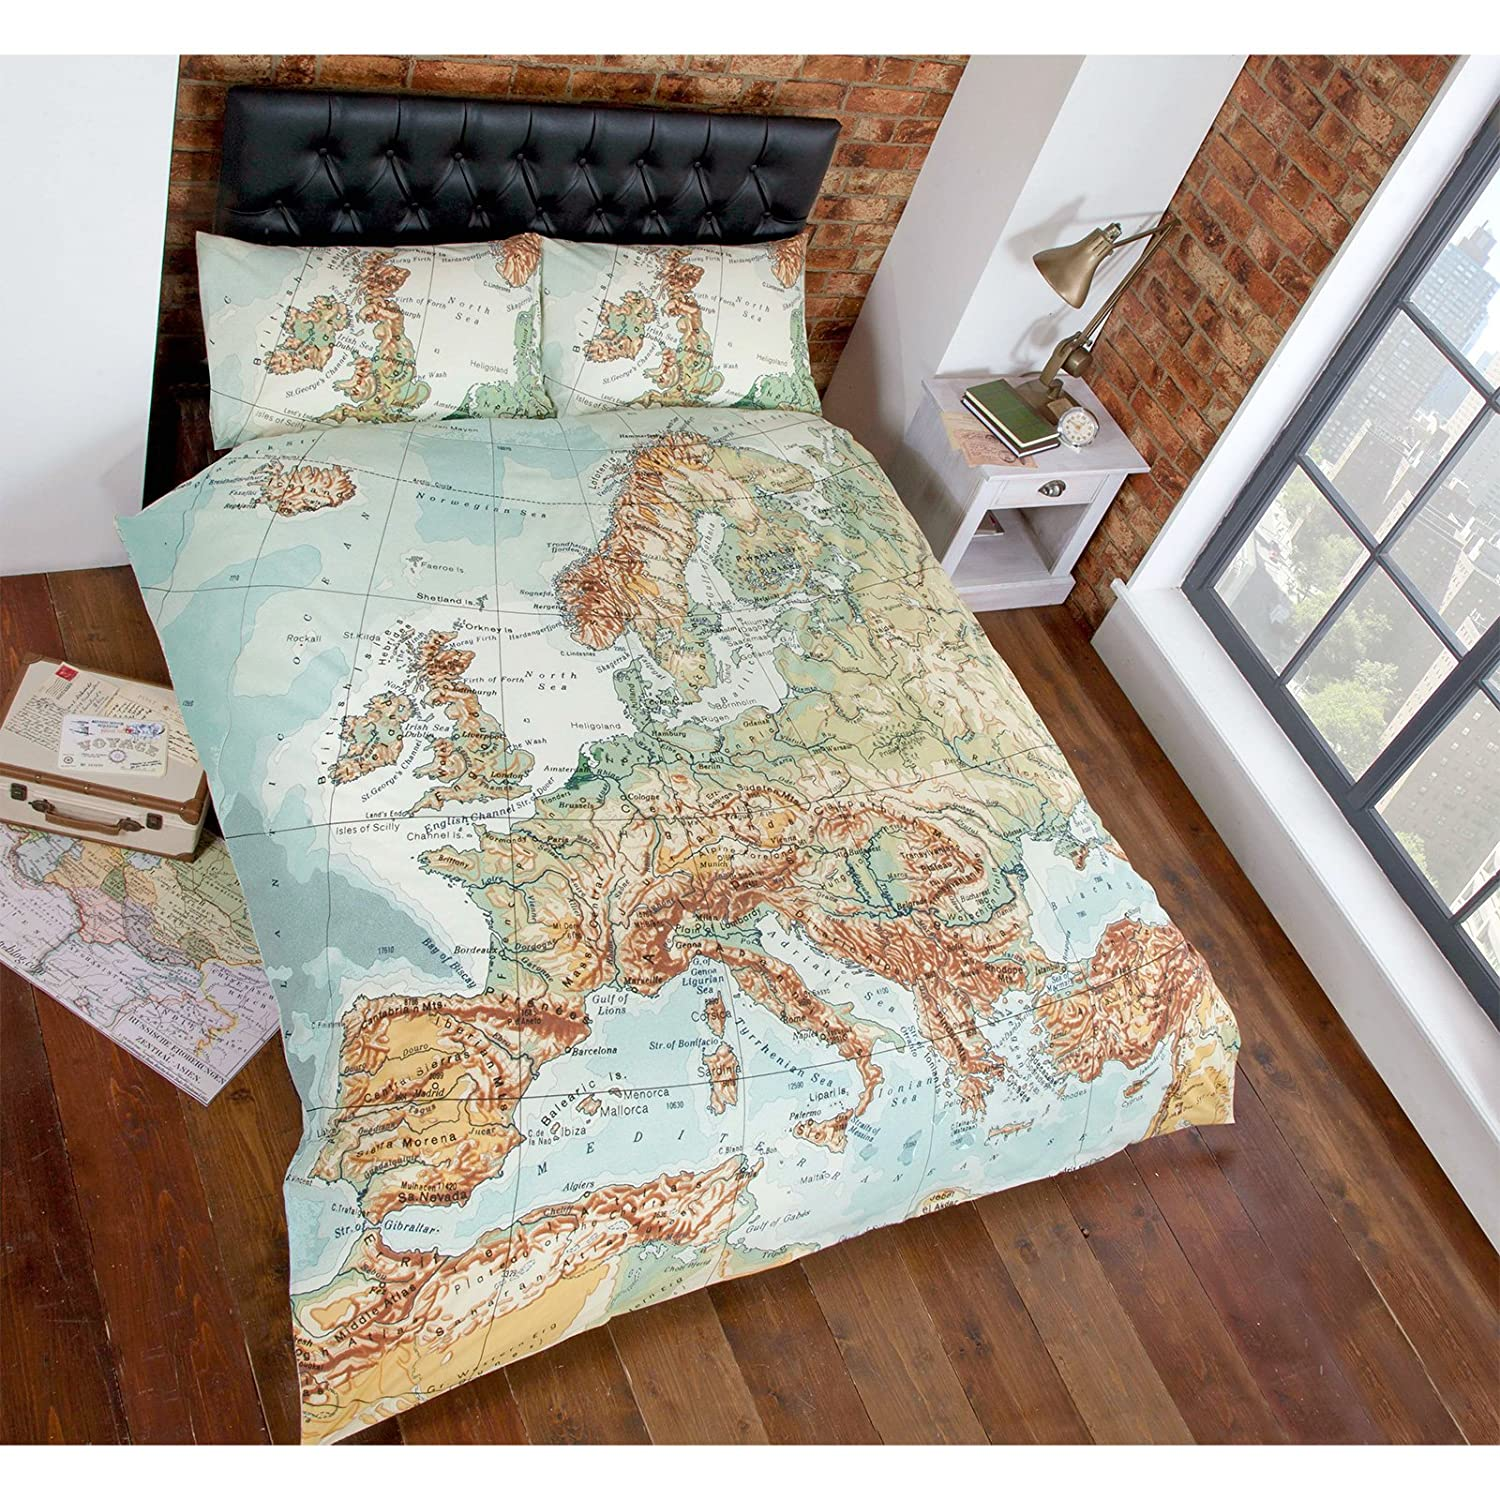 Just contempo vintage map duvet cover set double green amazon just contempo vintage map duvet cover set double green amazon kitchen home gumiabroncs Image collections